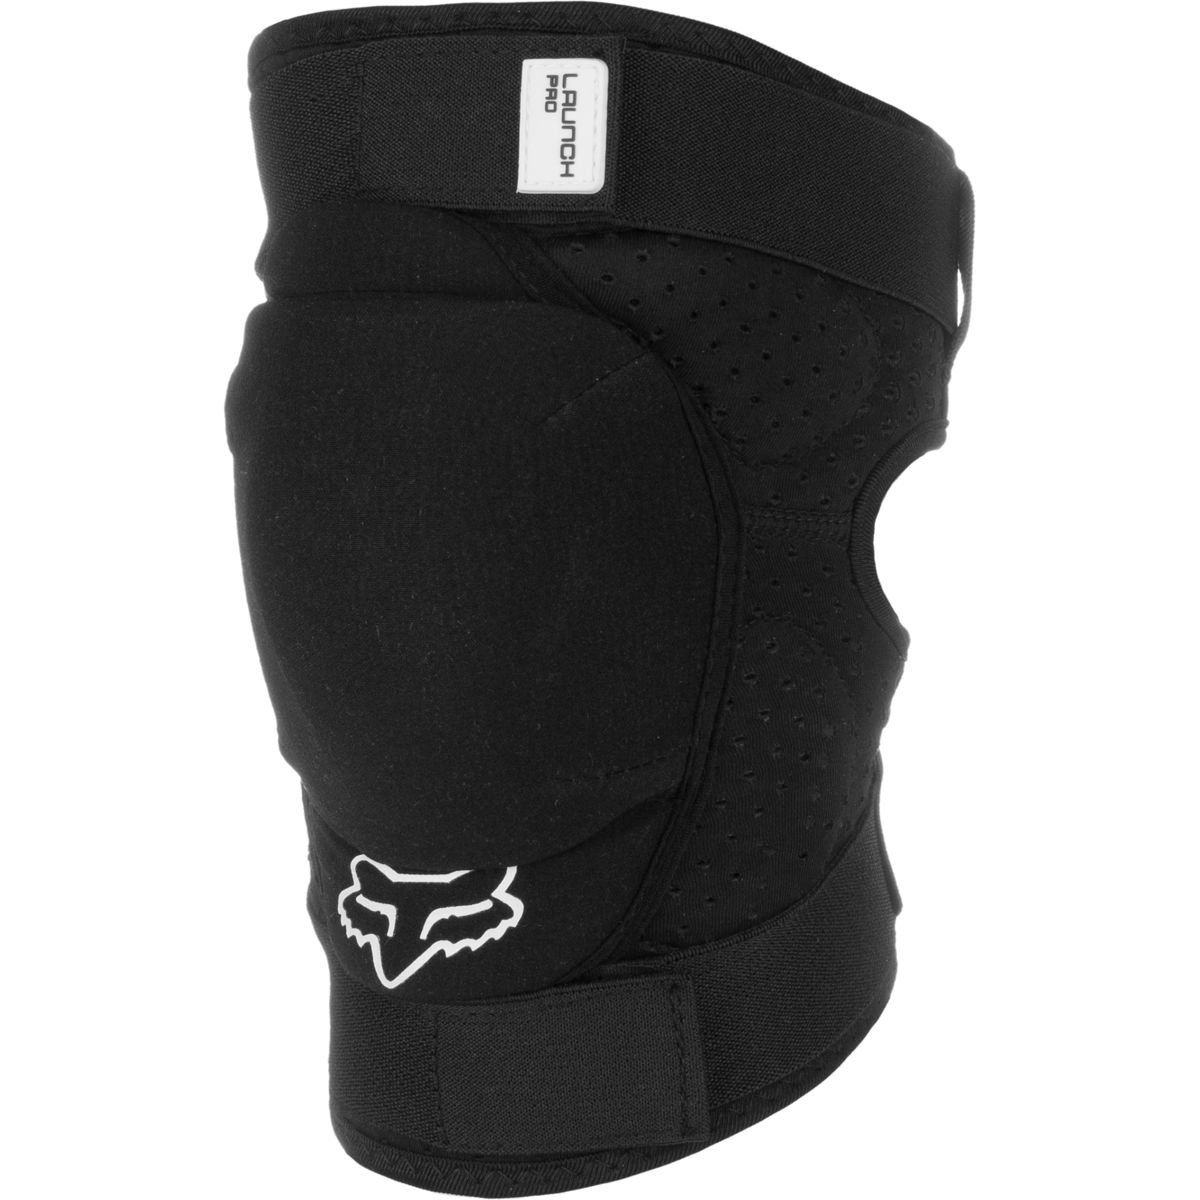 Fox Youth Launch Pro Cycling Knee Pad, Black, Large/X-Large